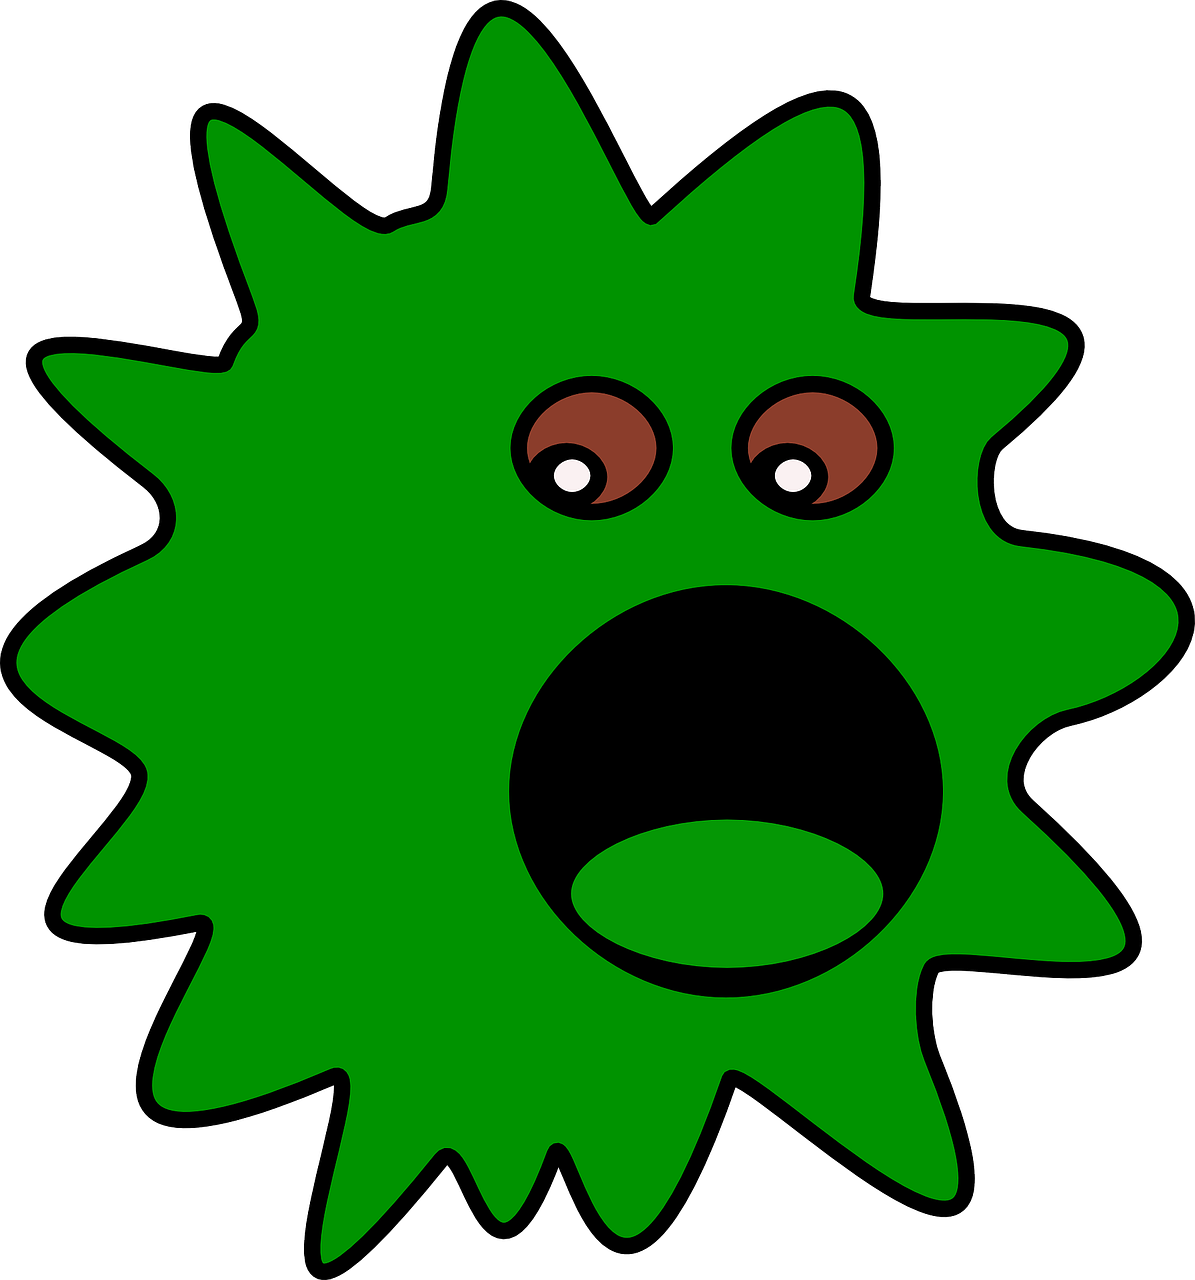 virus graphic green free photo